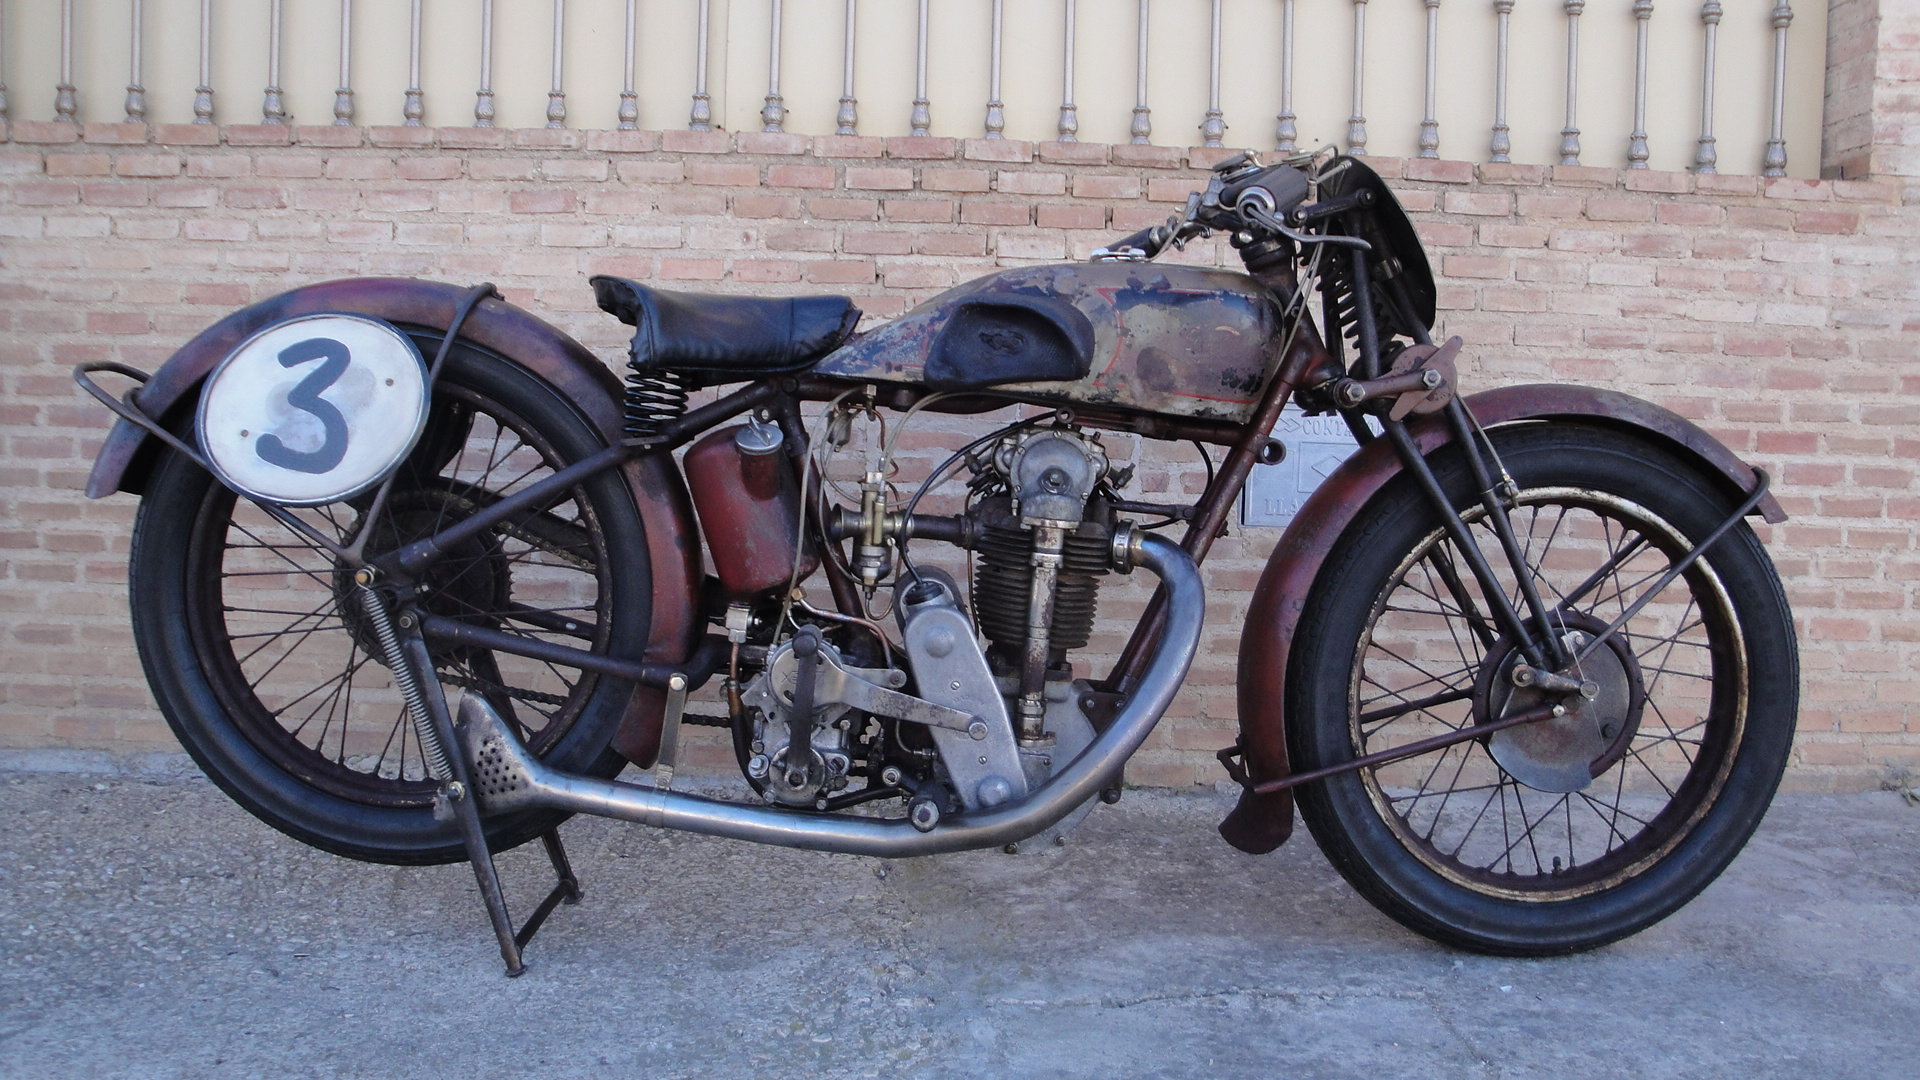 VELOCETTE KN 350cc OHC RACER YEAR 1929 For Sale (picture 1 of 6)